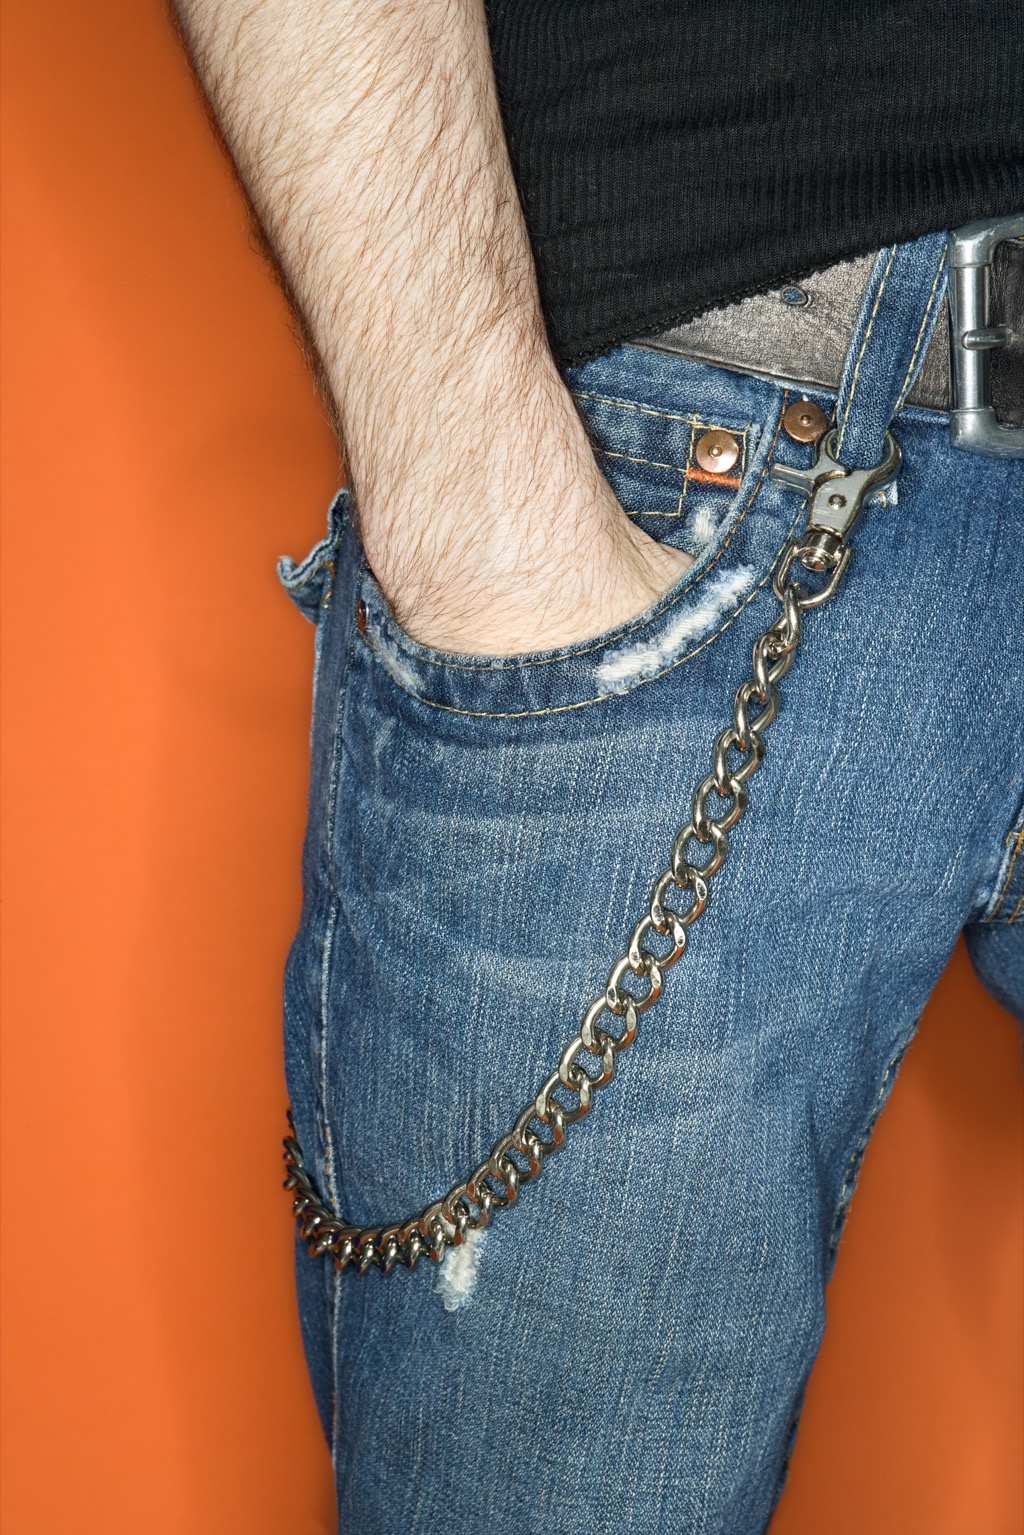 a chain wallet is never a good work look